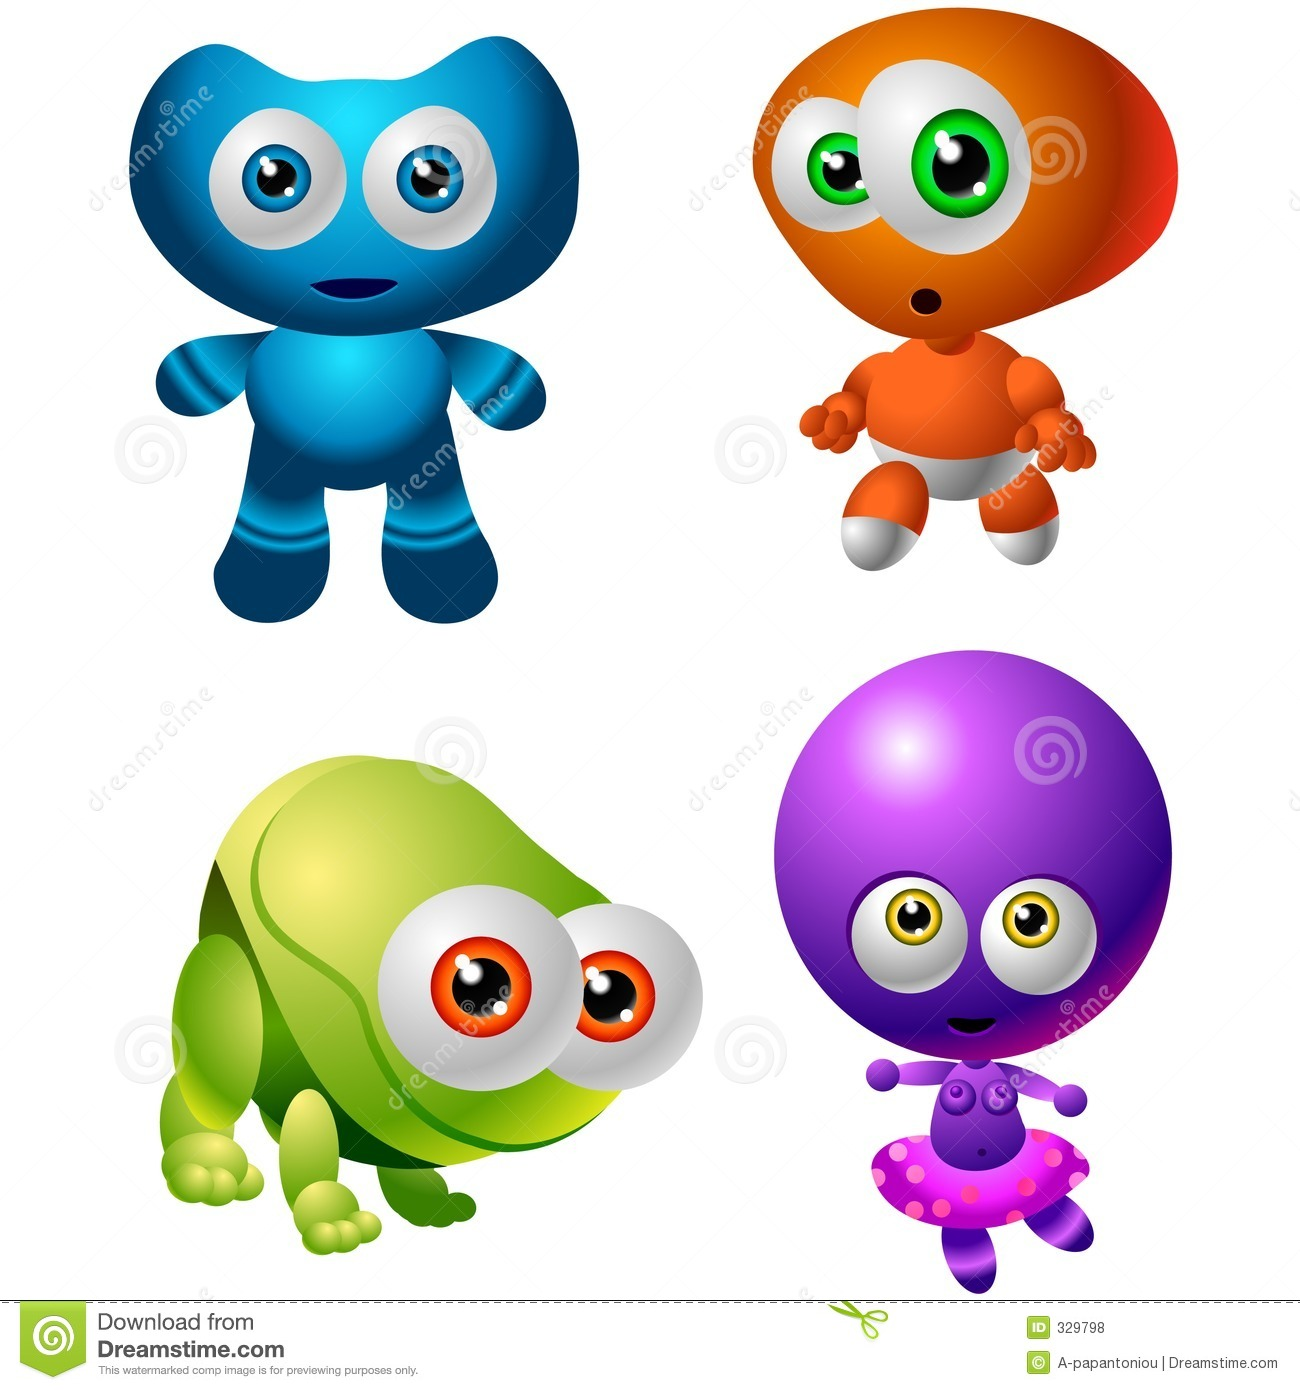 Character Design Collection 014: Baby Aliens